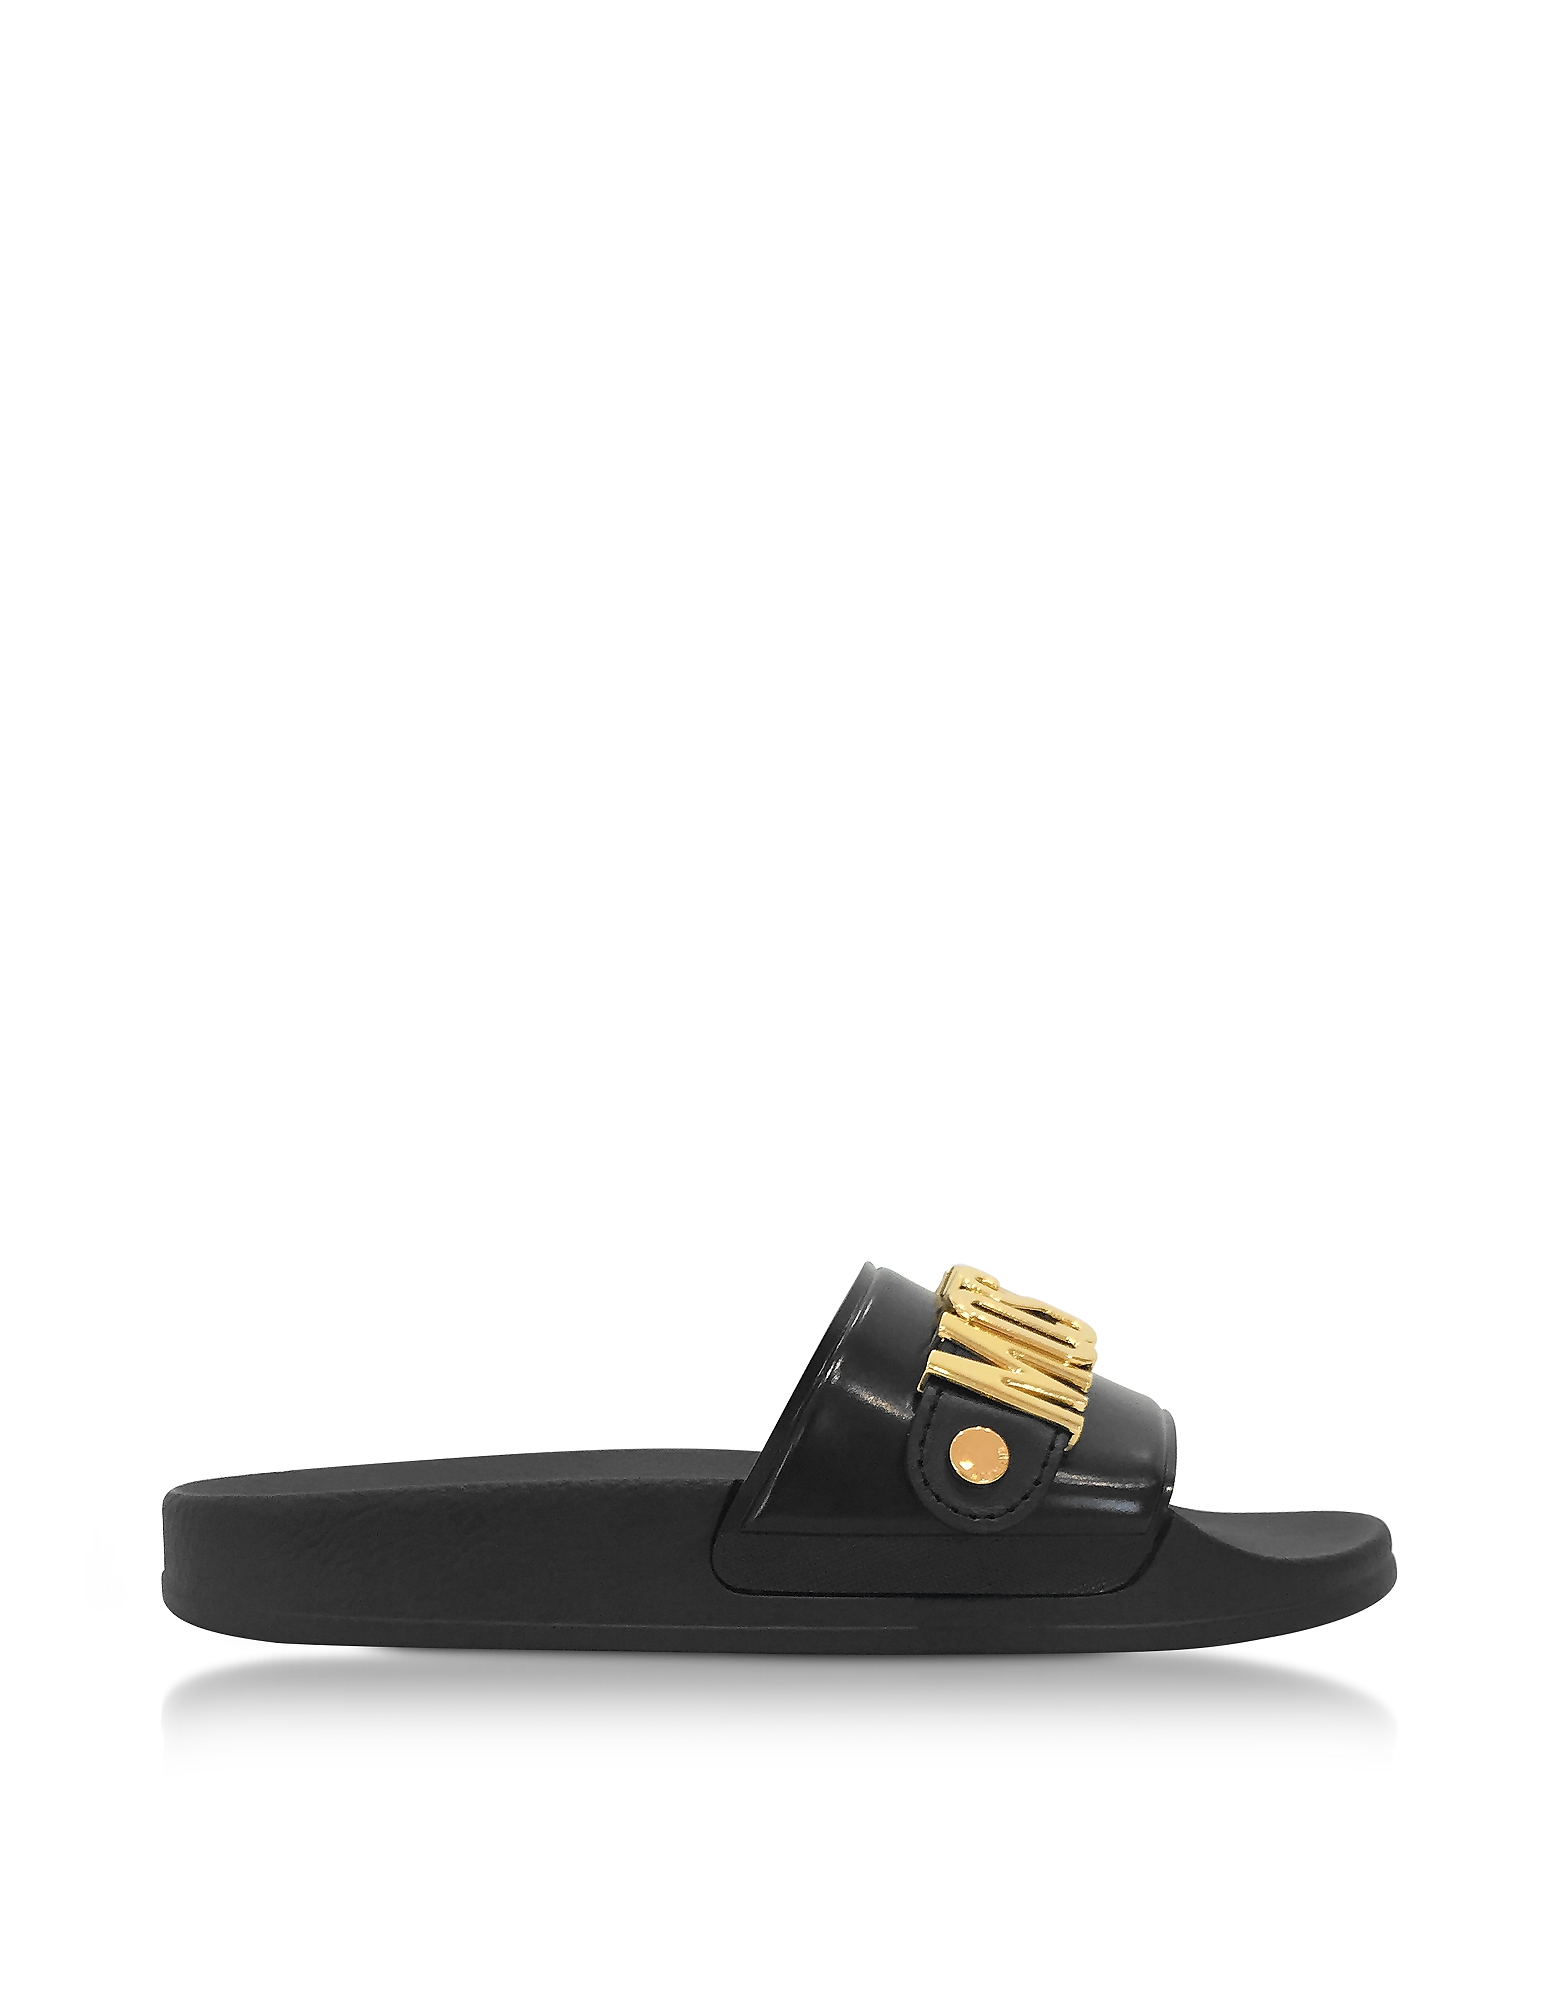 Moschino Shoes, Black Pool Slider Sandals w/Golden Metal Signature Logo